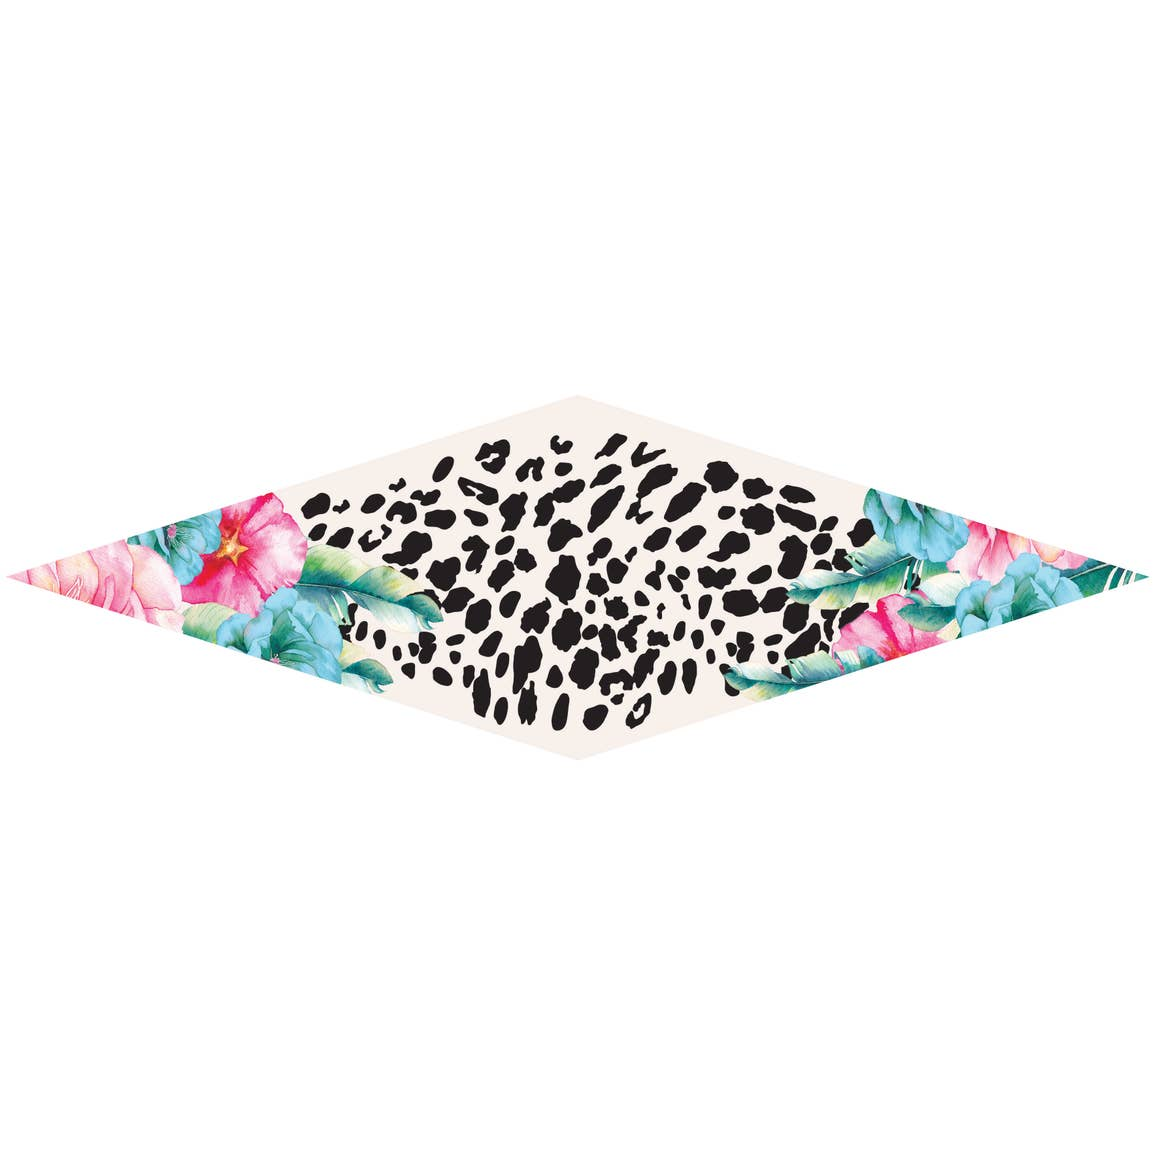 Diamond Bandana Scarf, by Banded